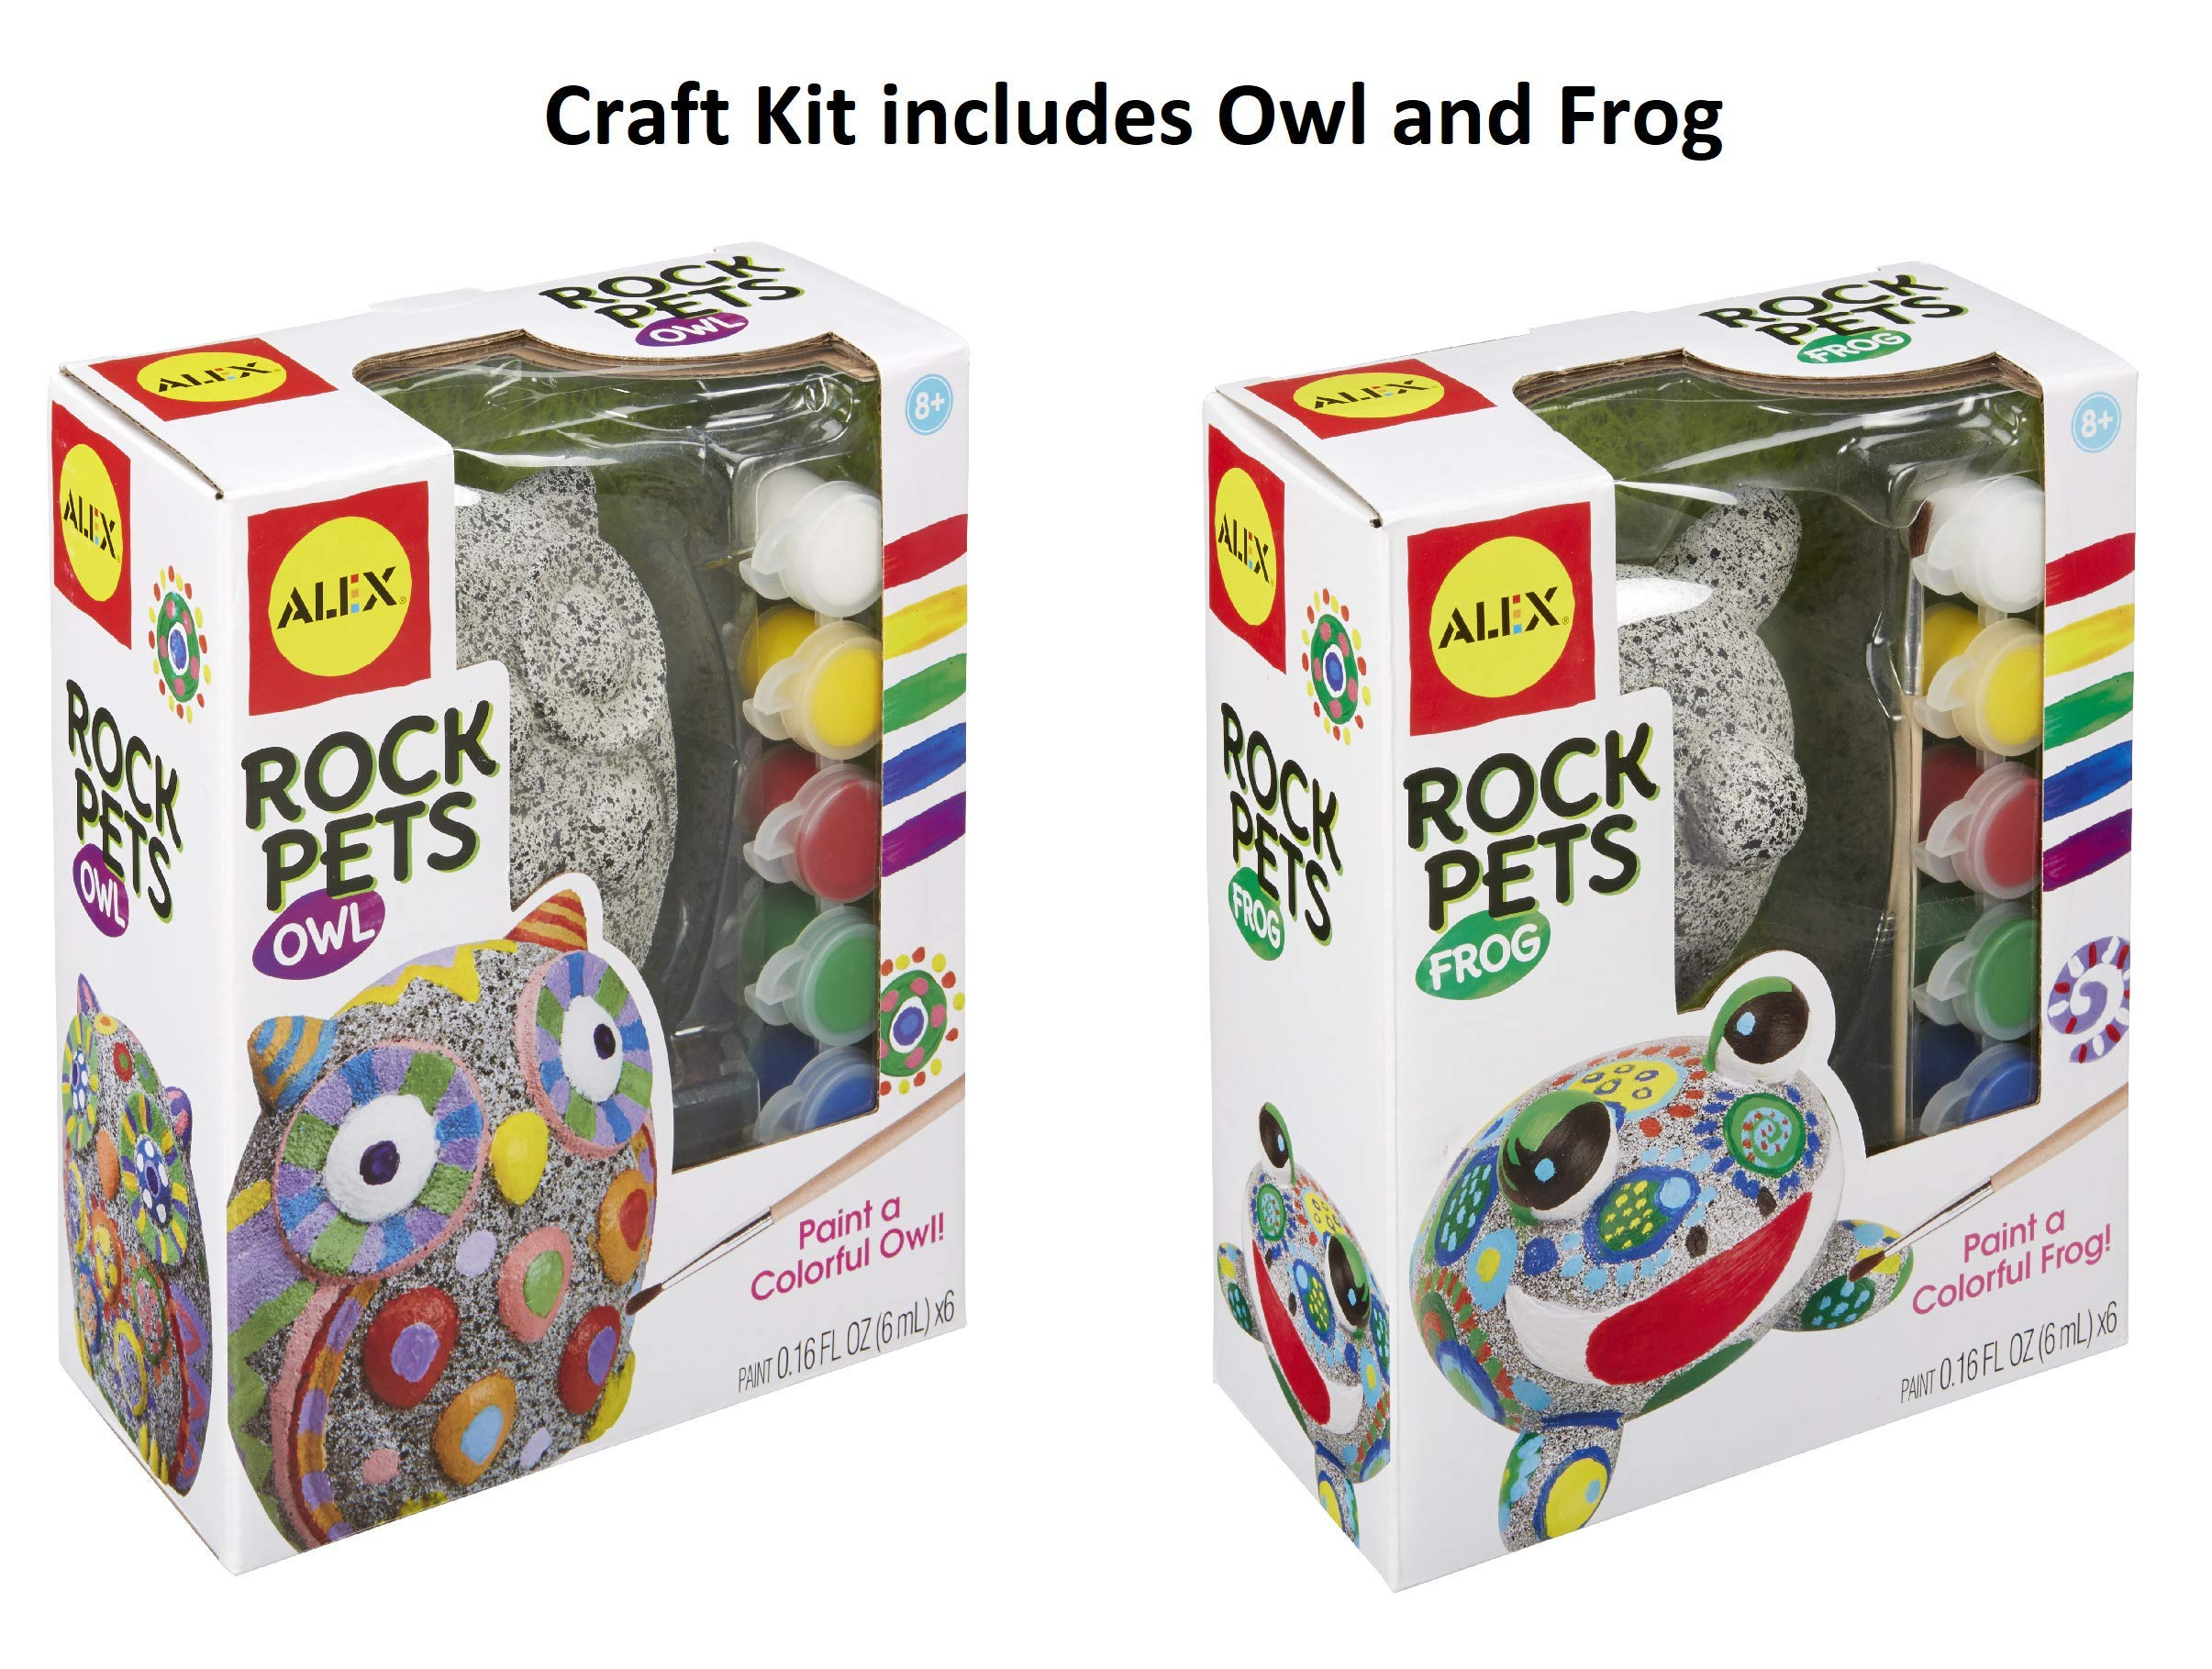 Alex Toys Craft Paint-a-Rock Pet Kits with 6 Weather-Resistant Paints, Paintbrush and Instructions in Each kit - Owl and Frog Pet Rocks Included in This Craft Pack